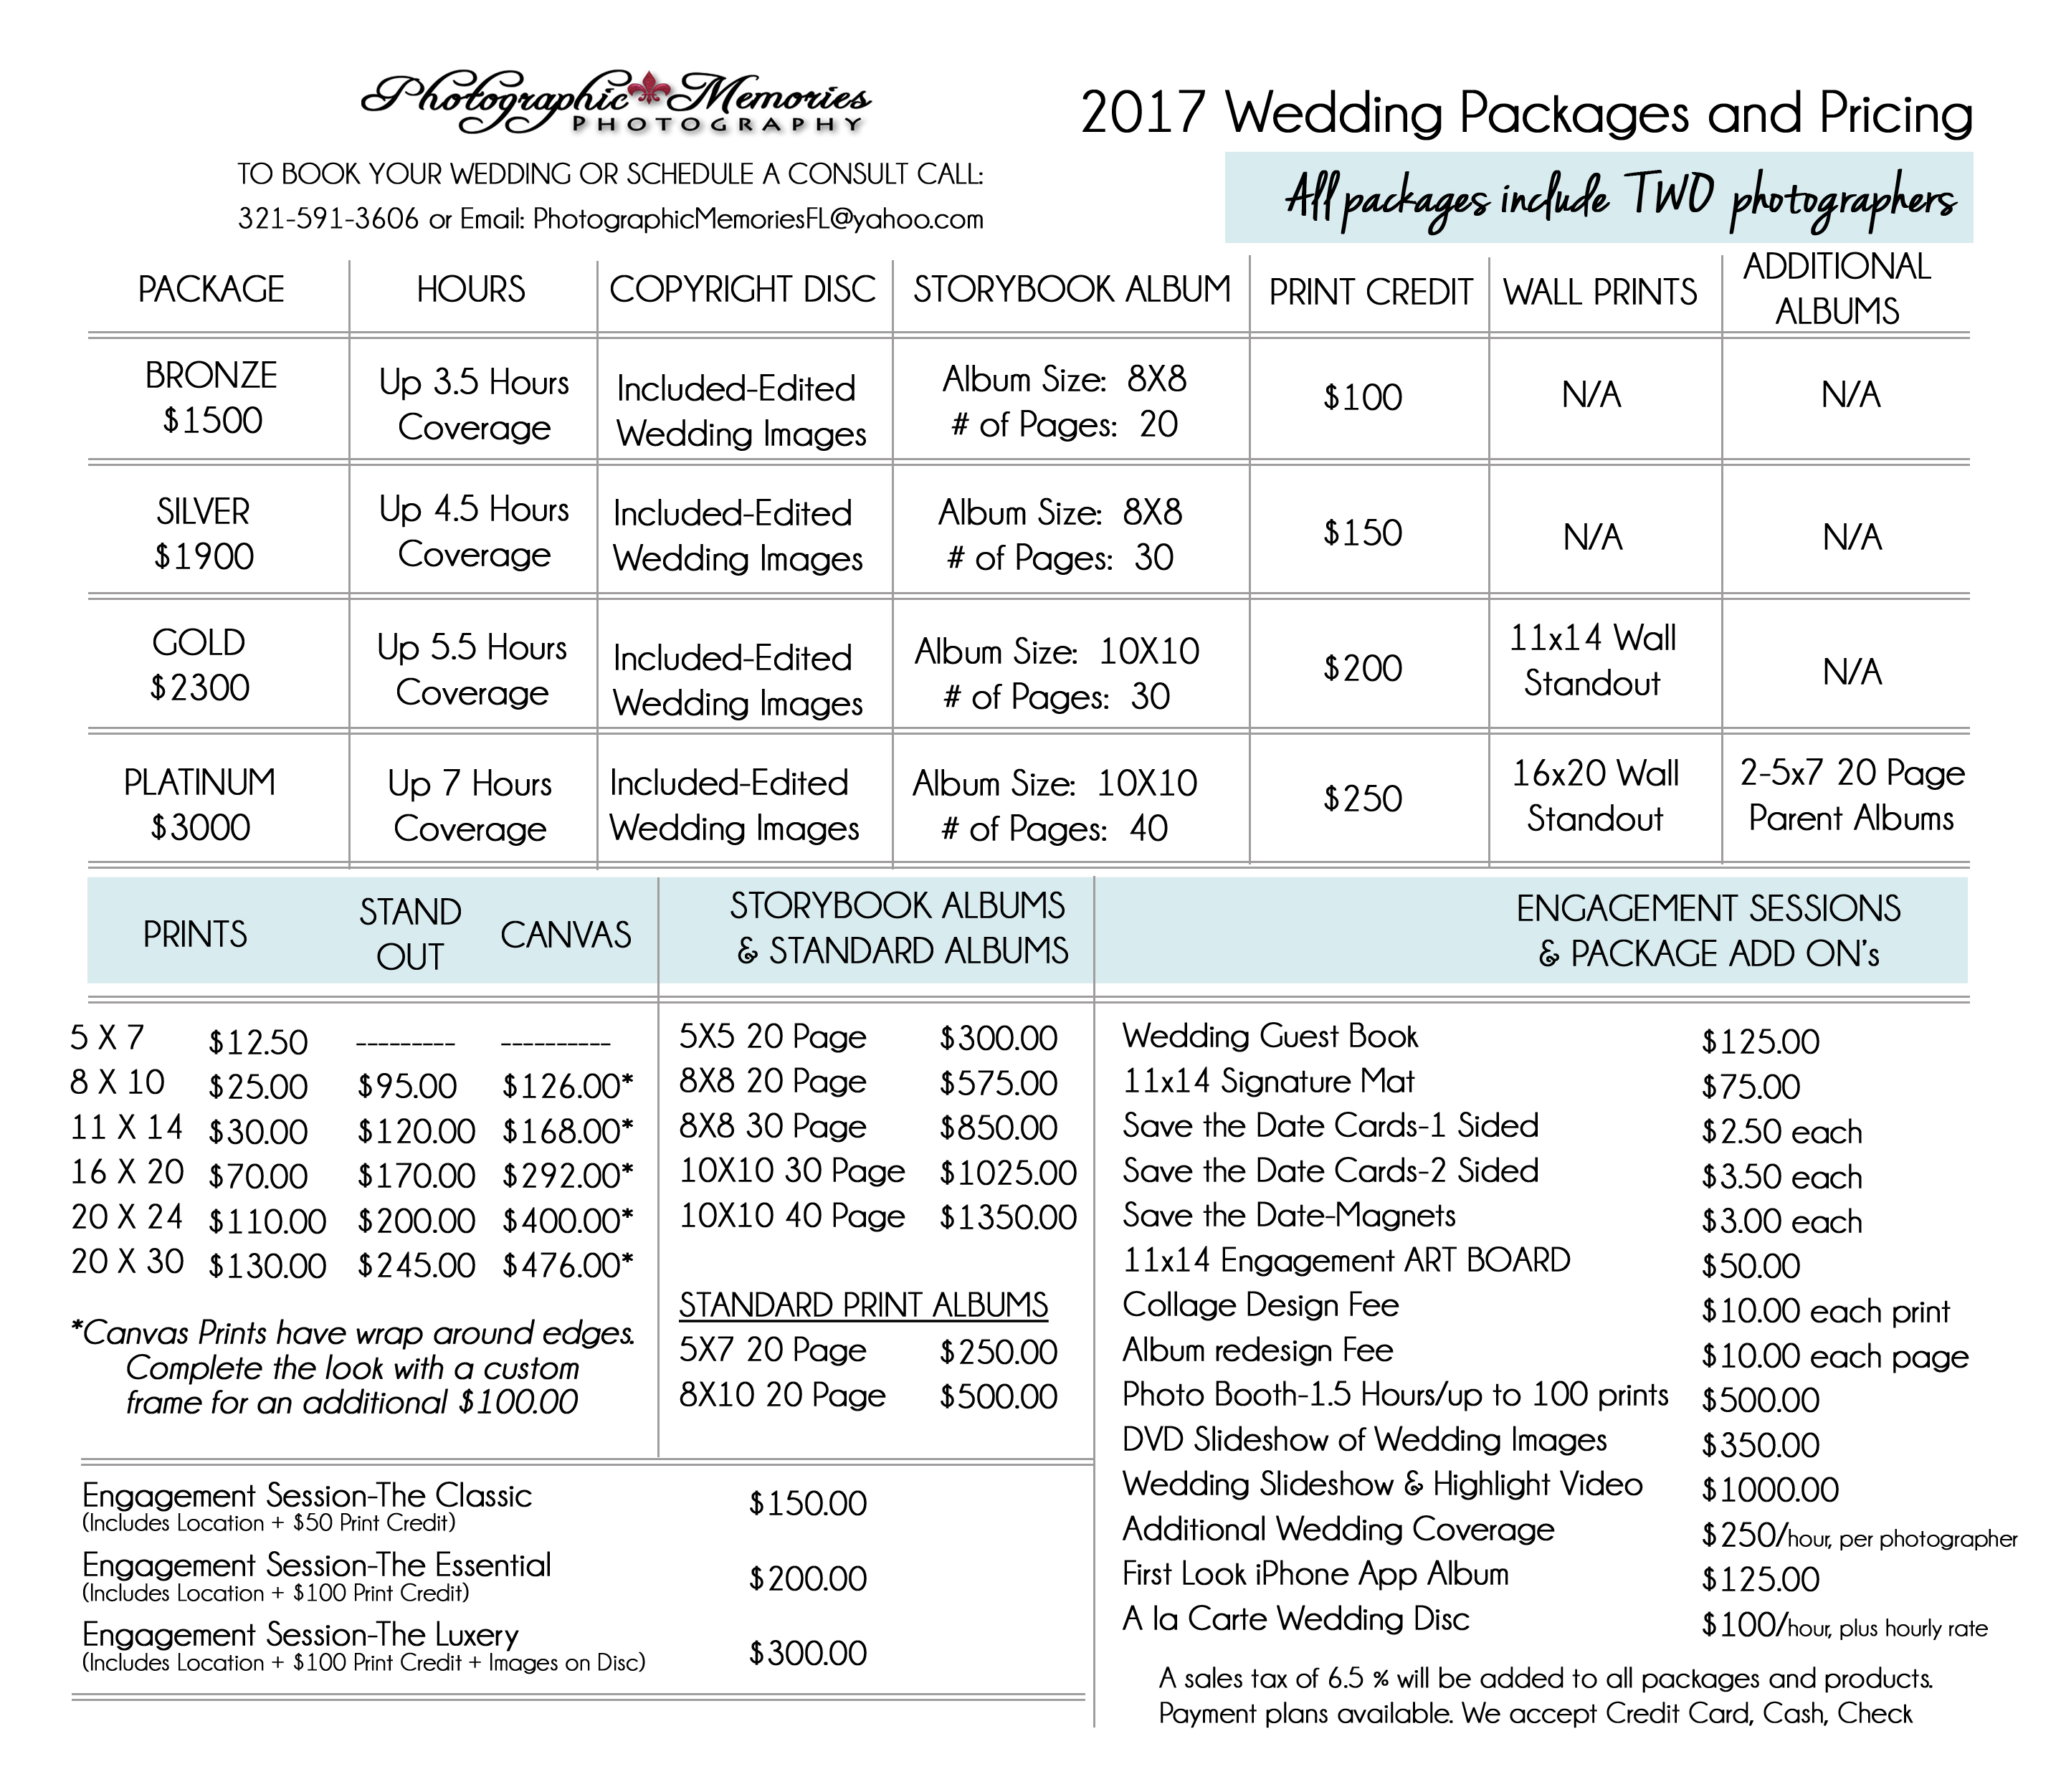 2017 Wedding Price List